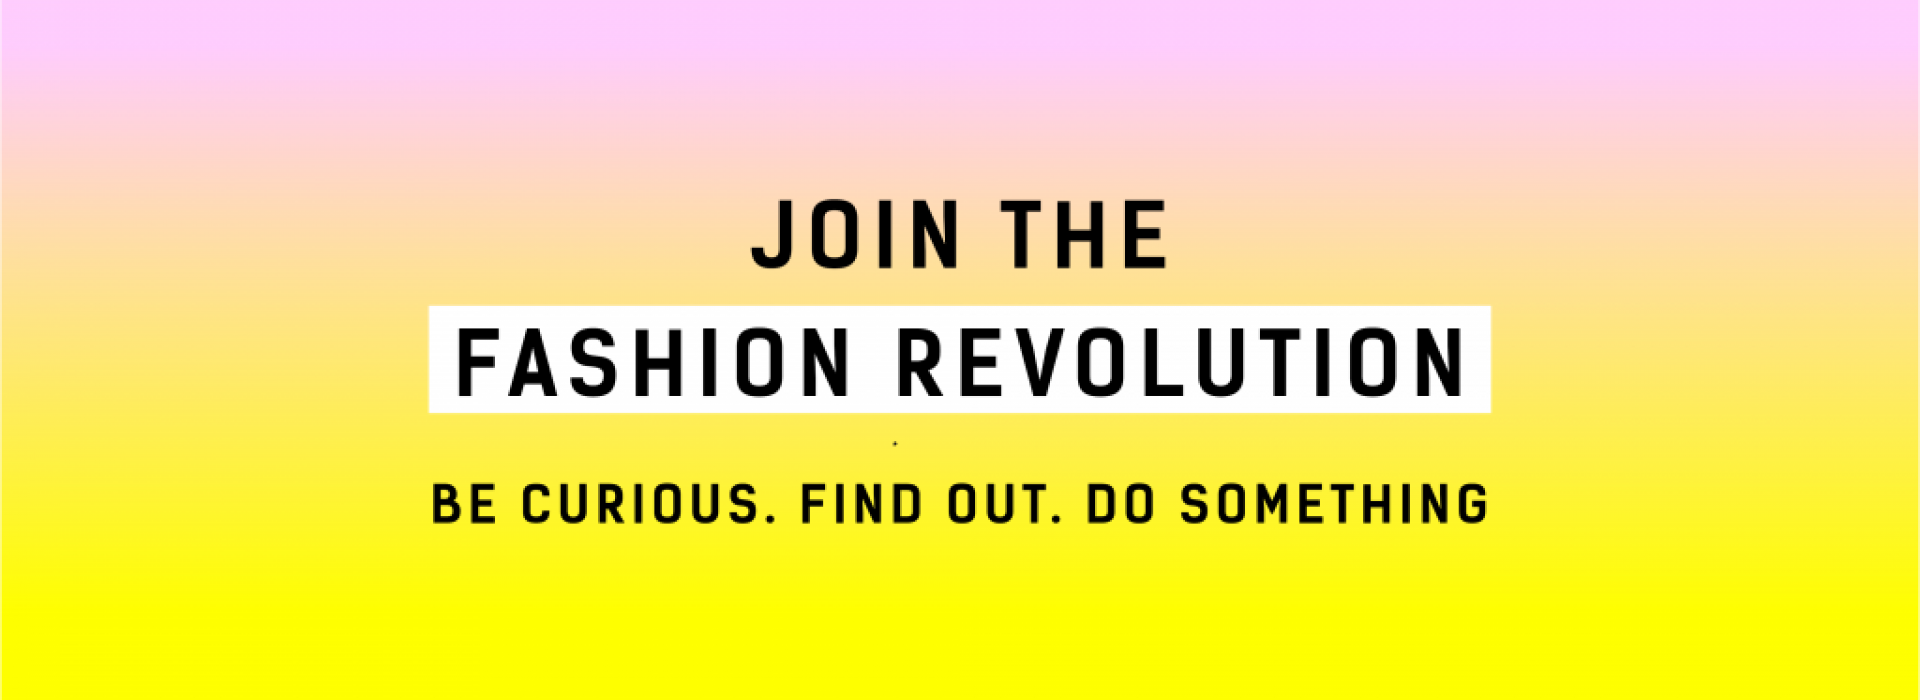 Fashion Revolution Week 2017 fragt: